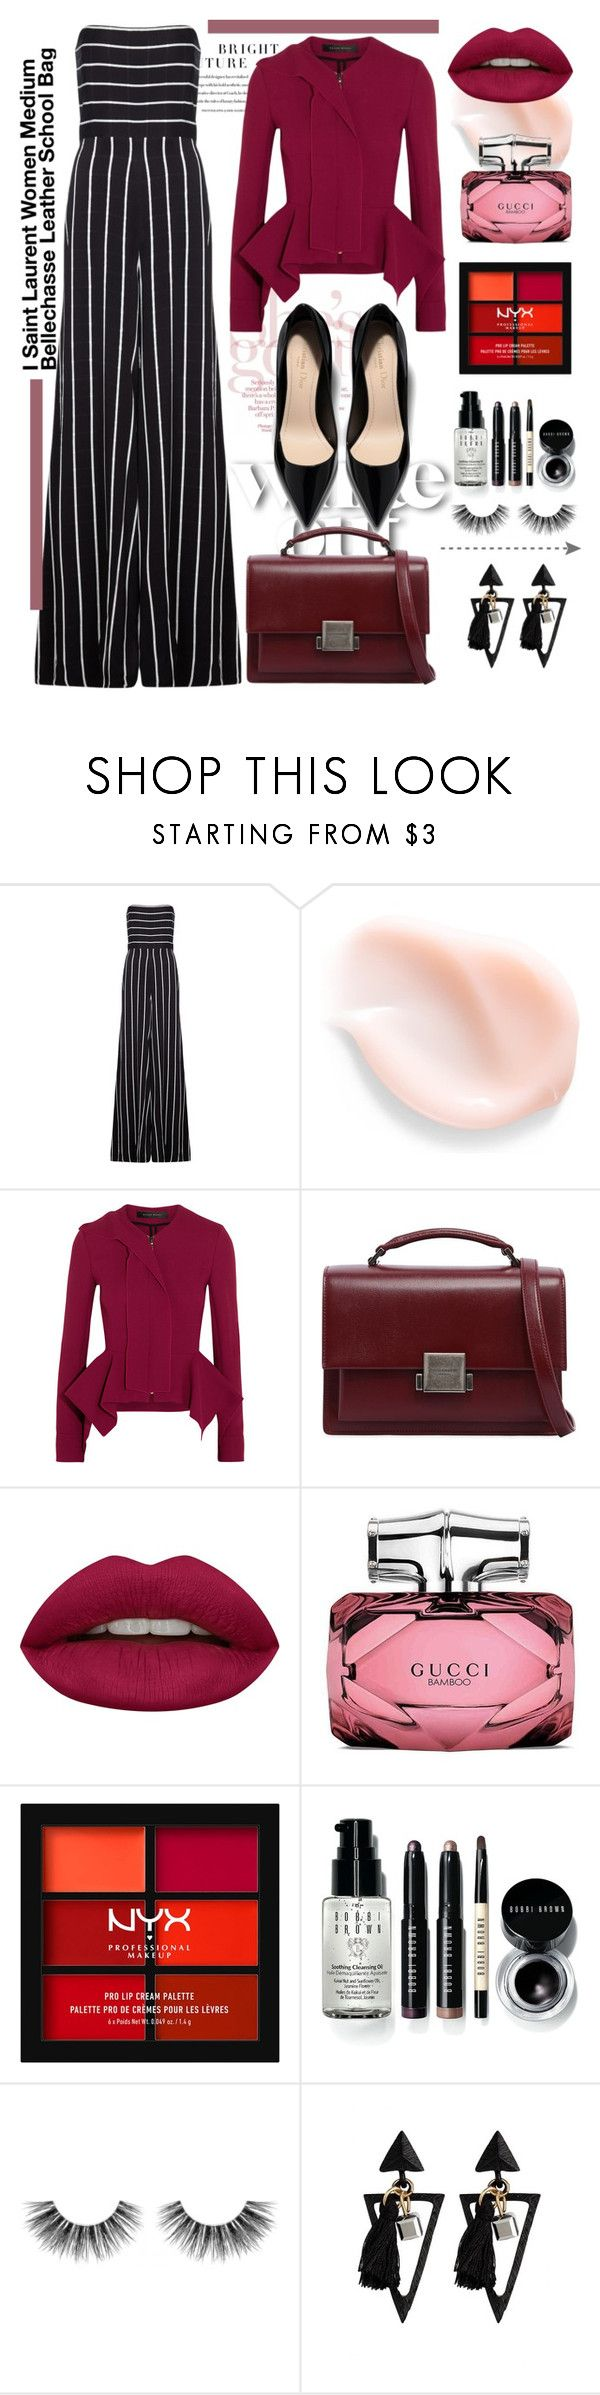 """Saint Laurent Women Medium Bellechasse Leather School Bag"" by esamames ❤ liked on Polyvore featuring Safiyaa, Roland Mouret, Yves Saint Laurent, Huda Beauty, Gucci, NYX, Bobbi Brown Cosmetics and Velour Lashes"